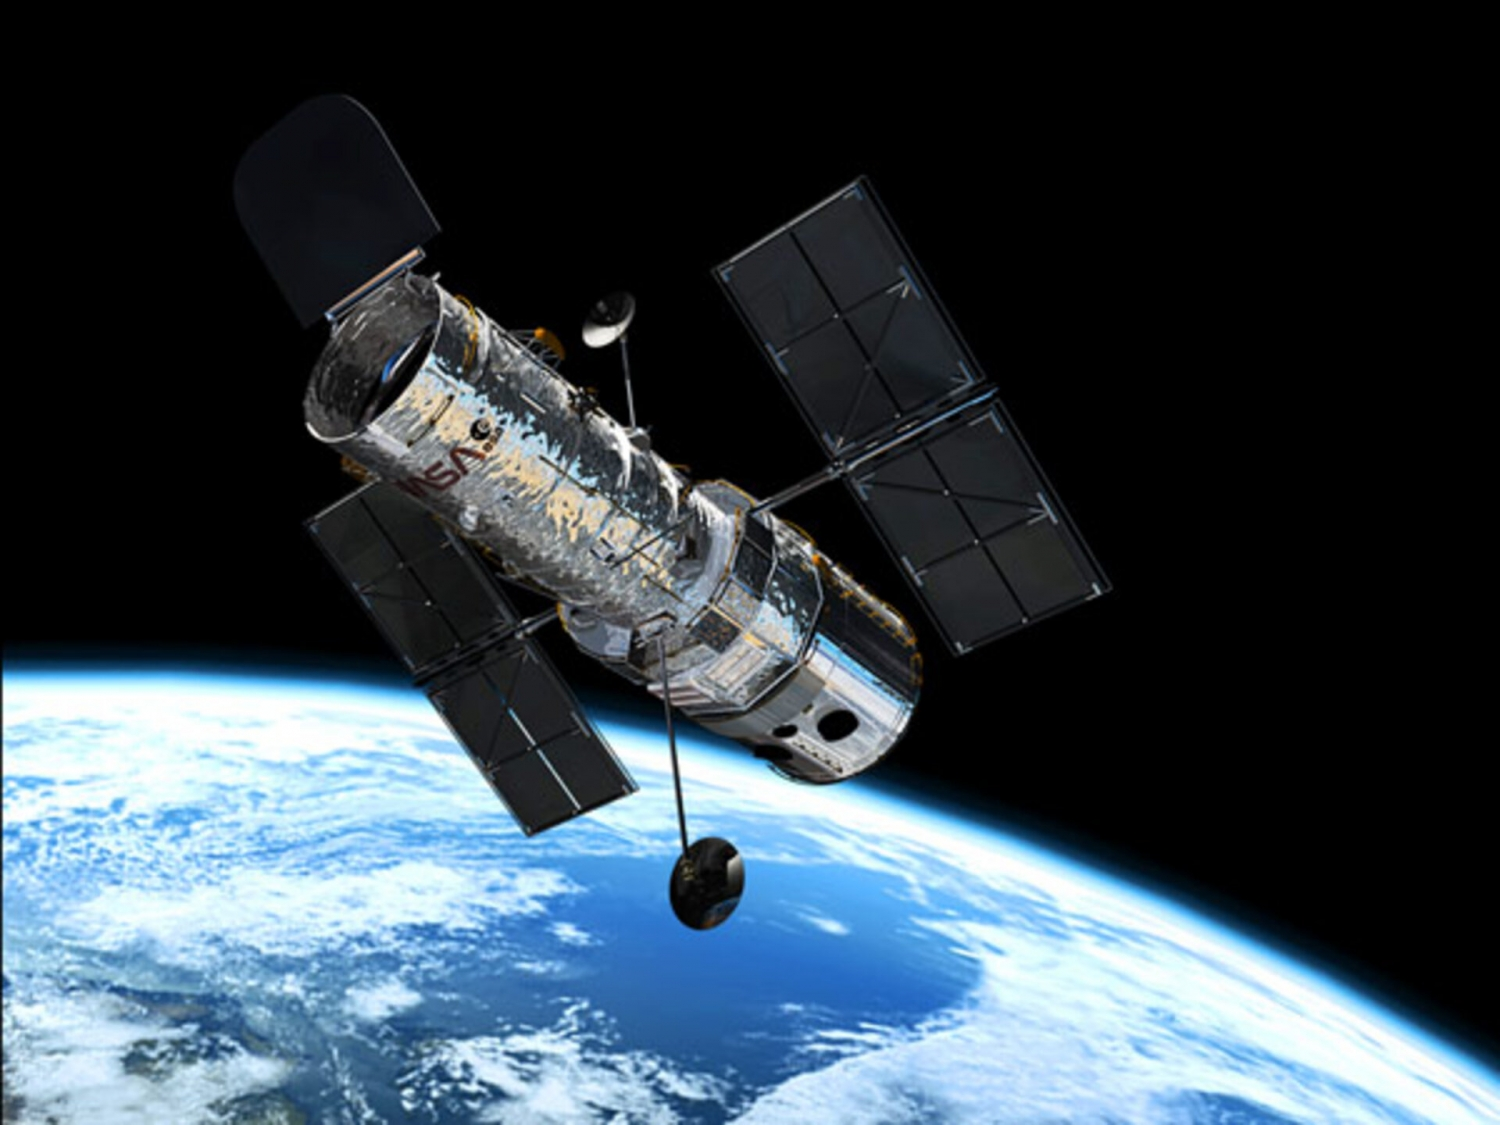 You have never seen an image from Hubble like this before